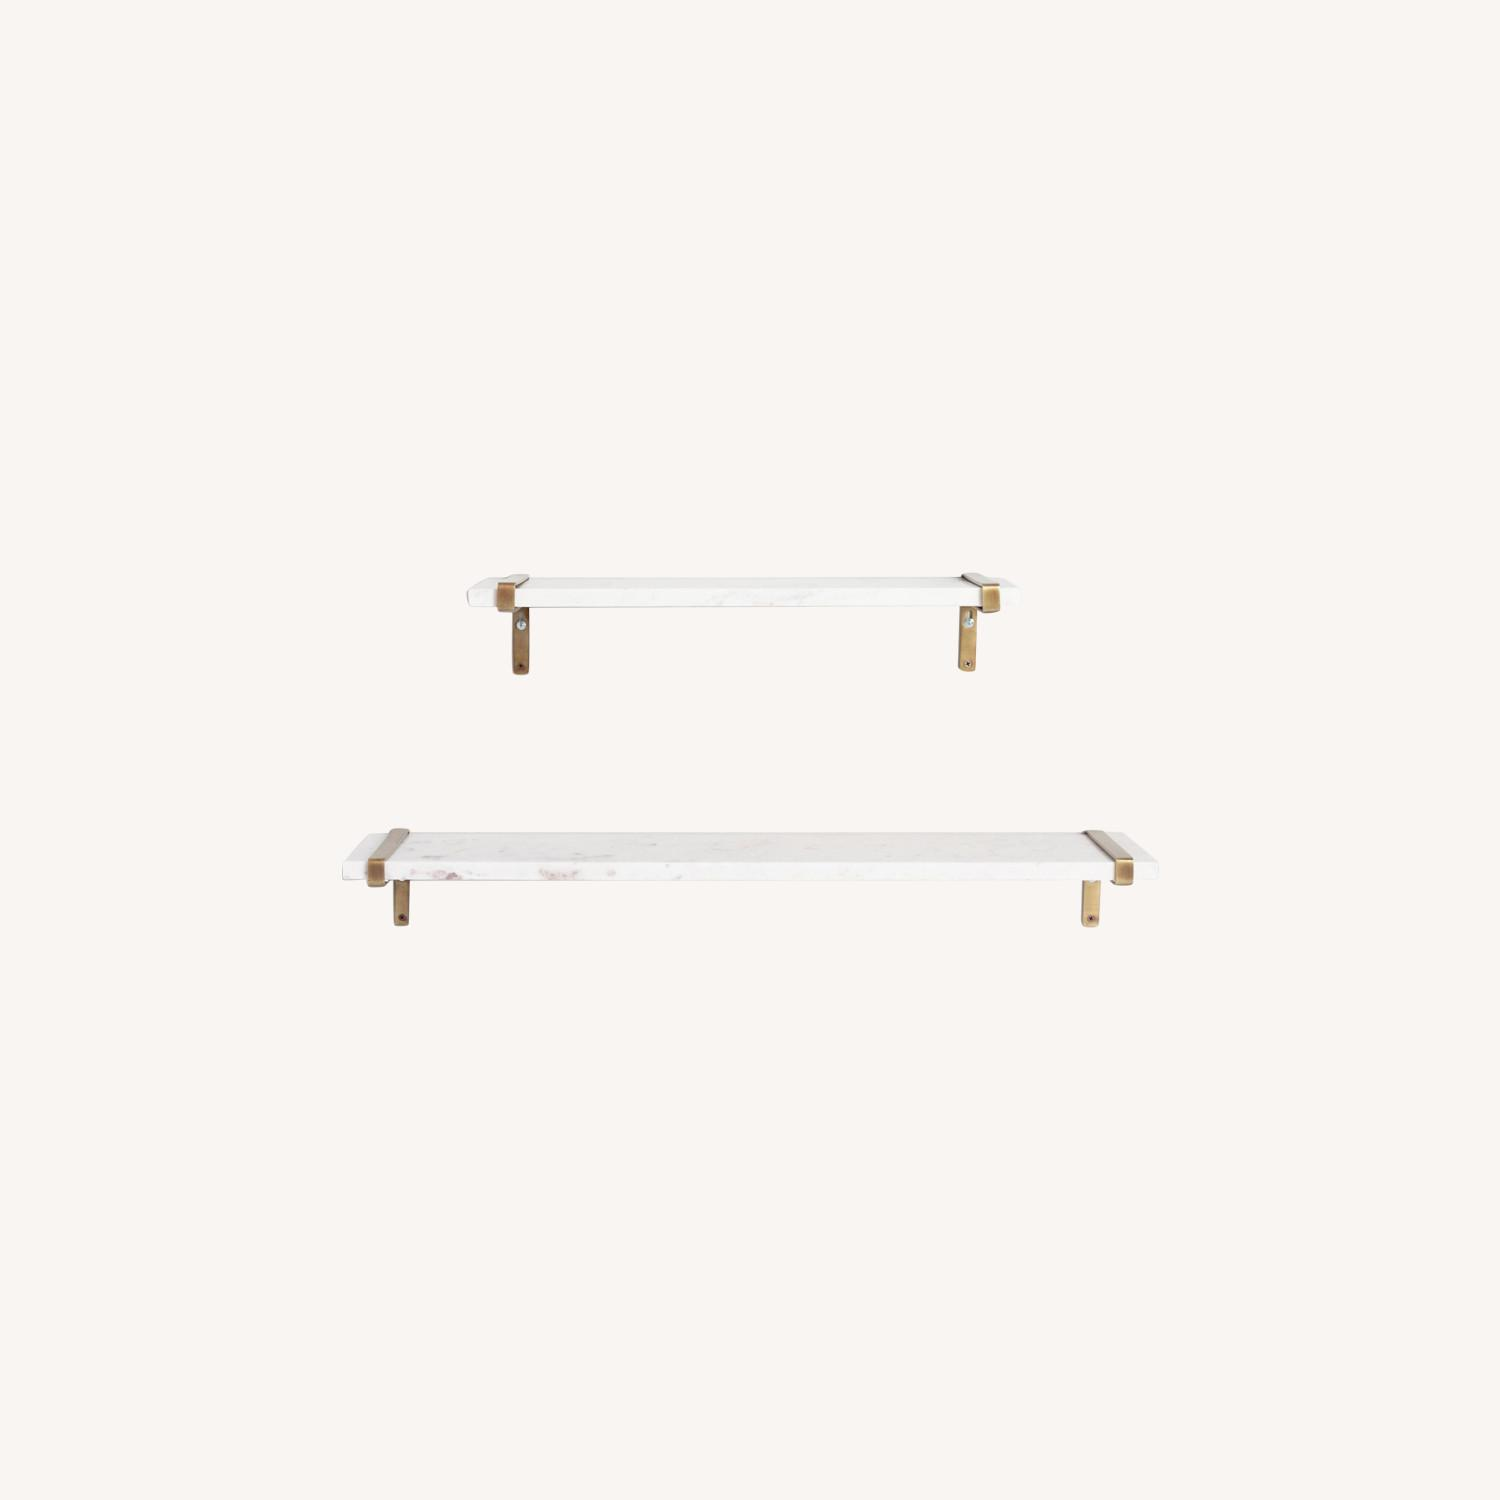 White Marble & Antique Brass Wall Shelves - image-0